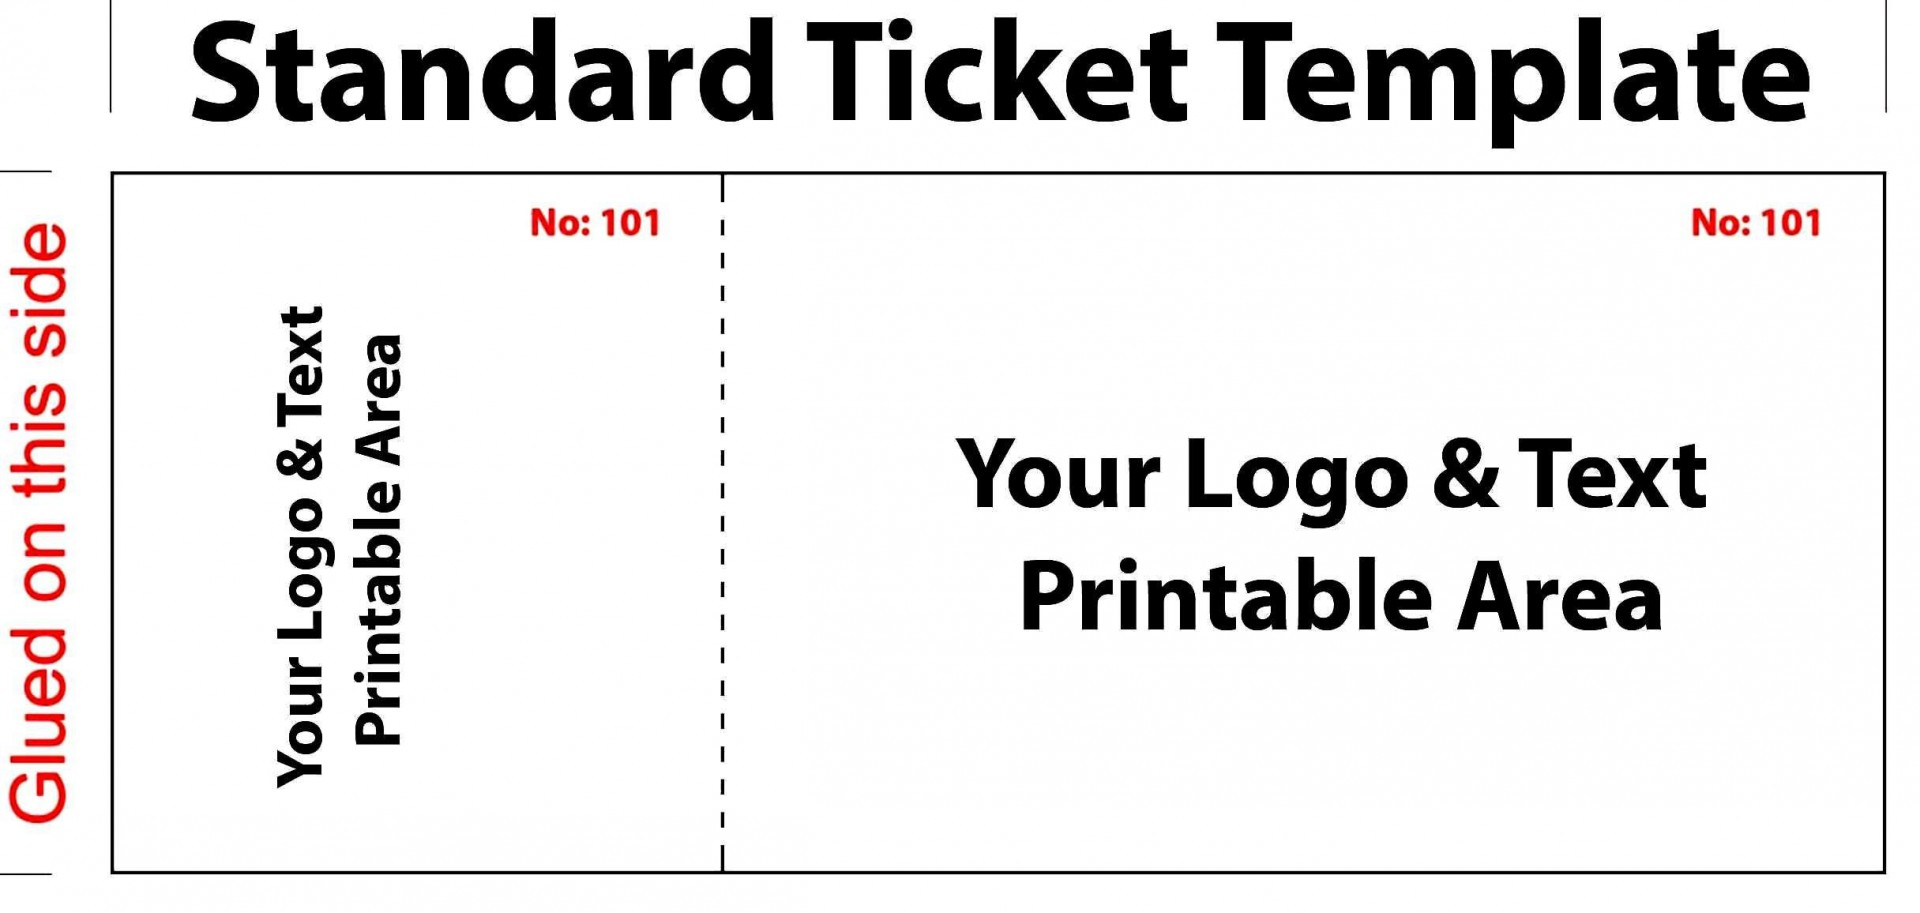 005 Outstanding Free Event Ticket Template Printable Sample 1920